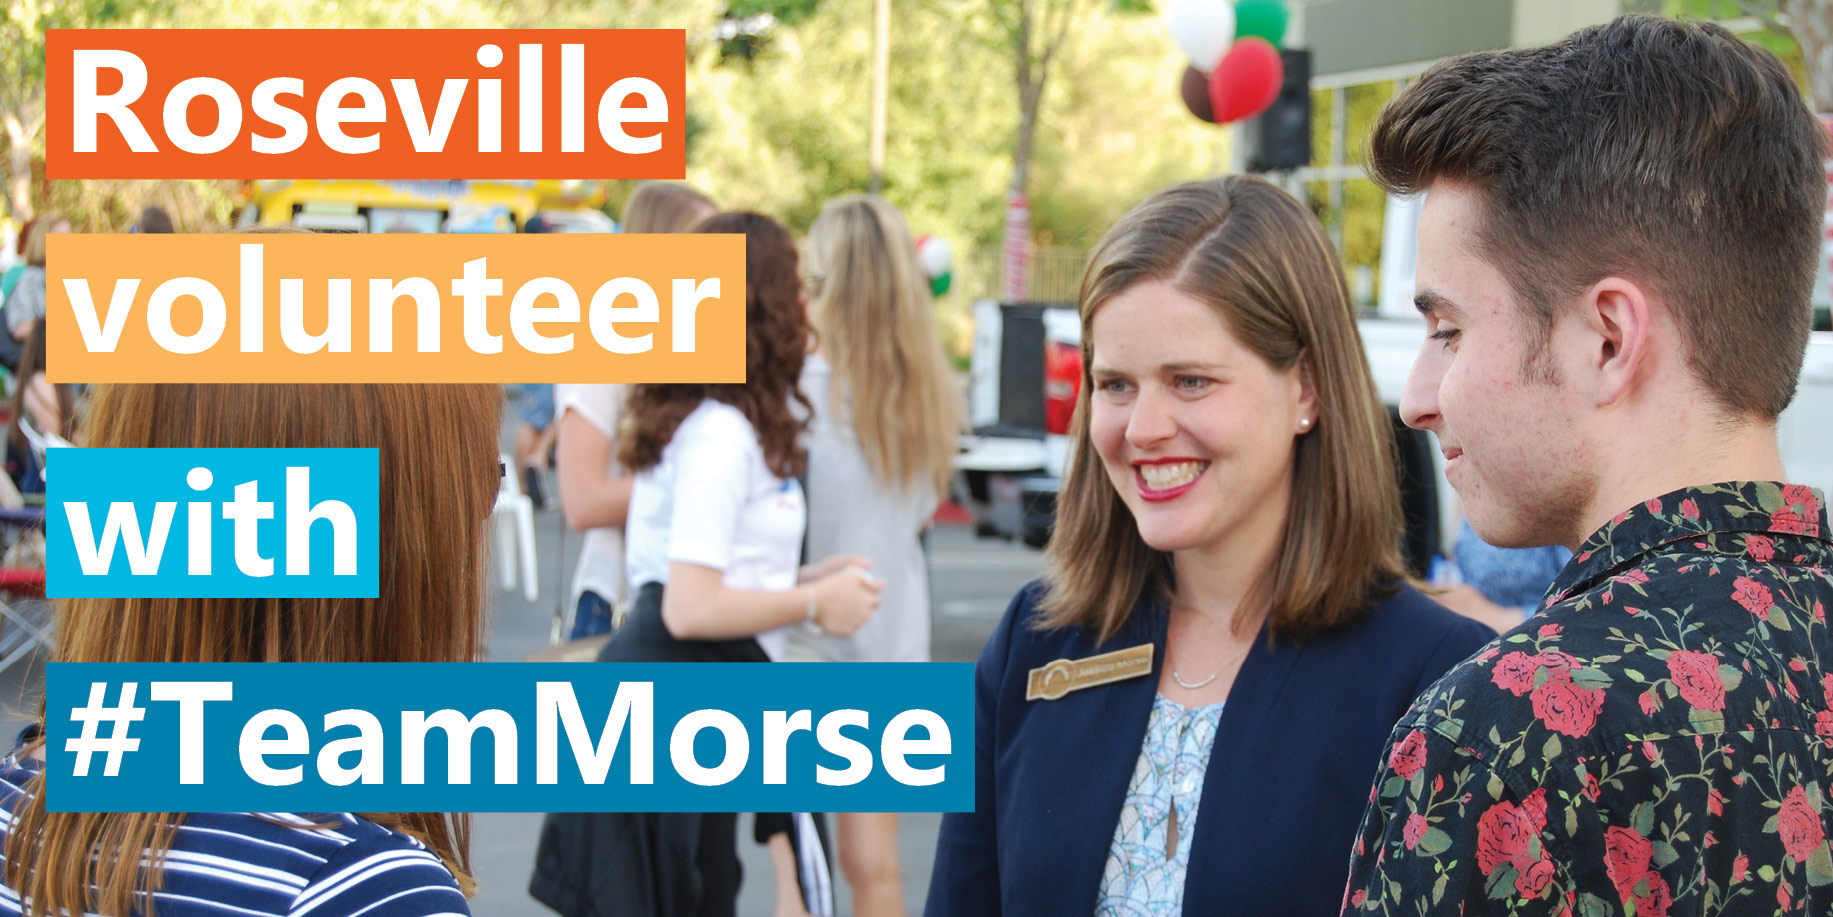 Roseville Volunteer Graphic.jpg